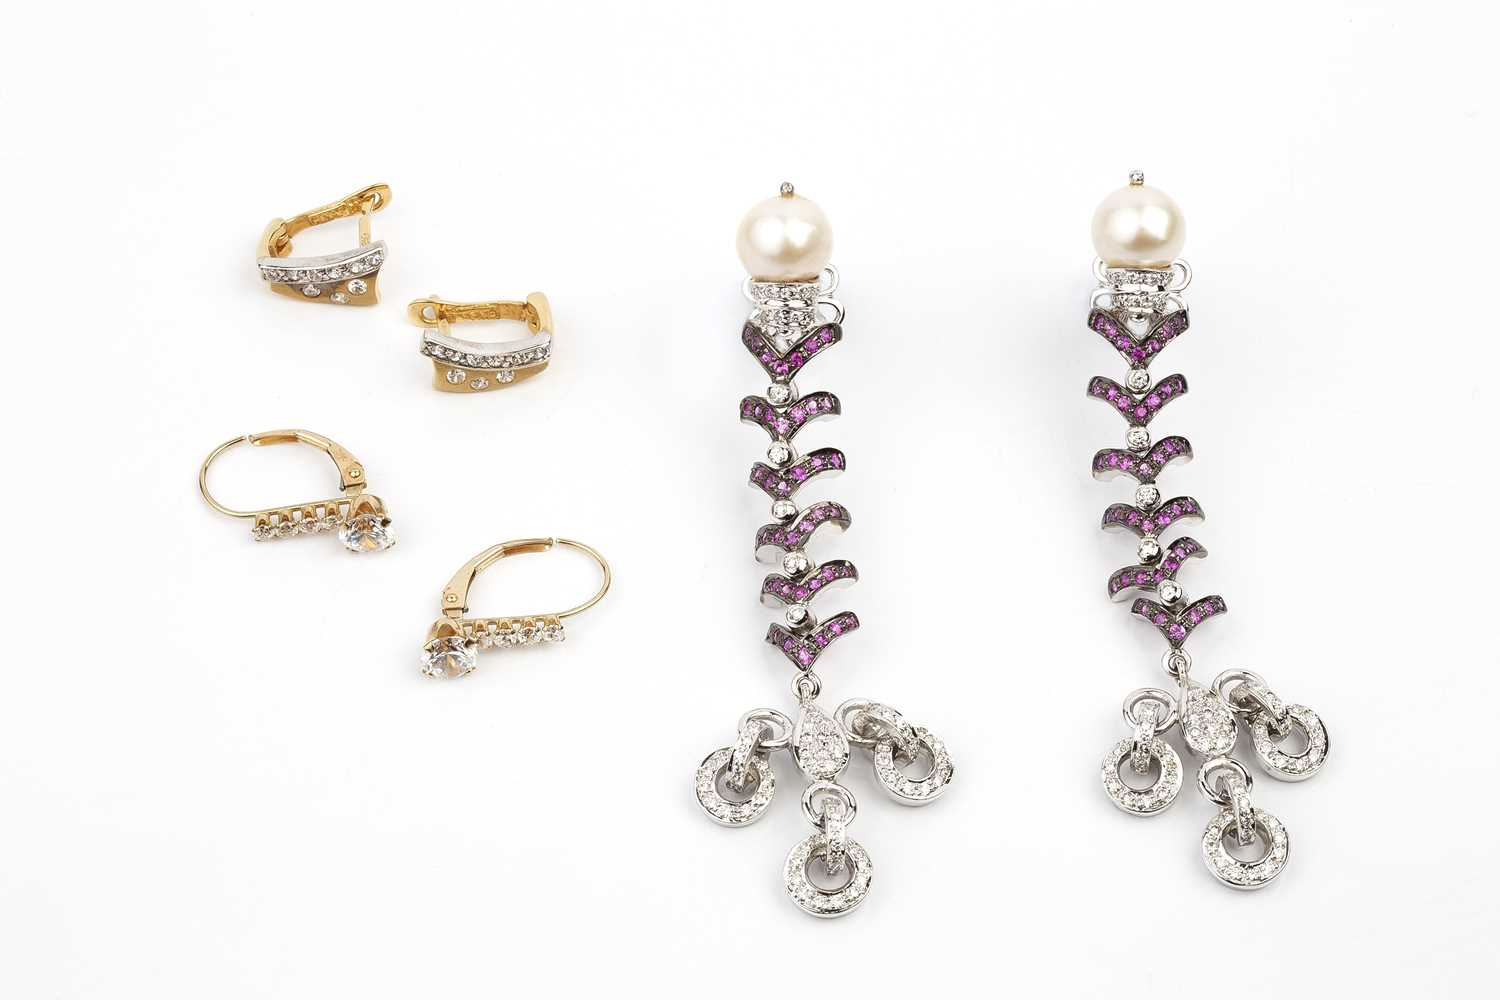 A pair of cultured pearl, diamond and gem set ear pendants, of articulated design, with wishbone-